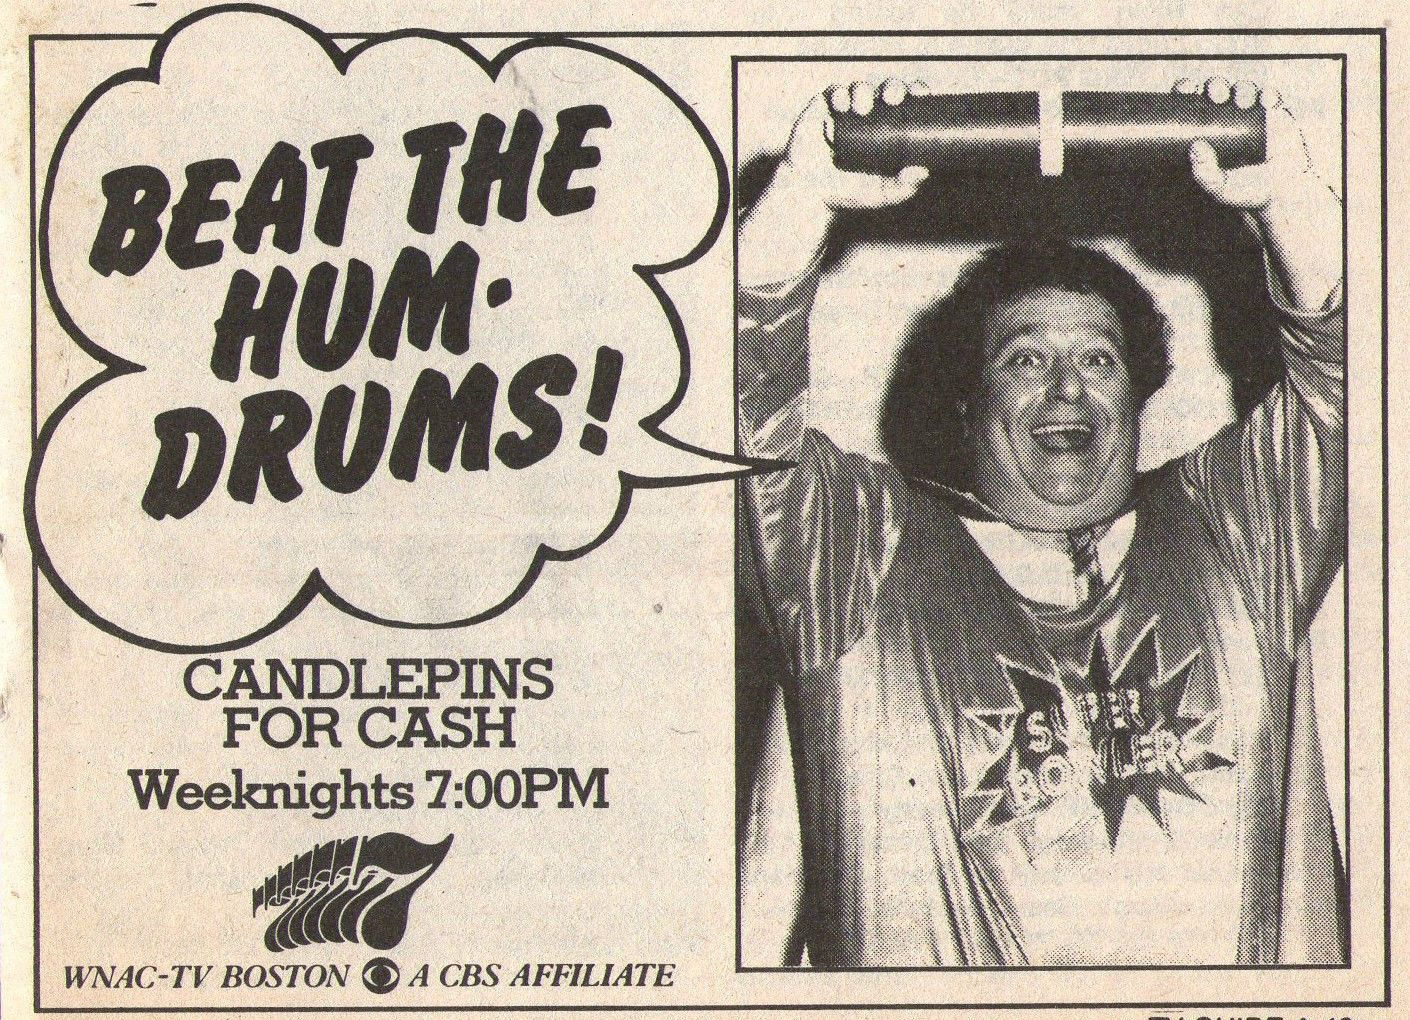 Candlepins for Cash (WNAC) TV Guide ad, 1979